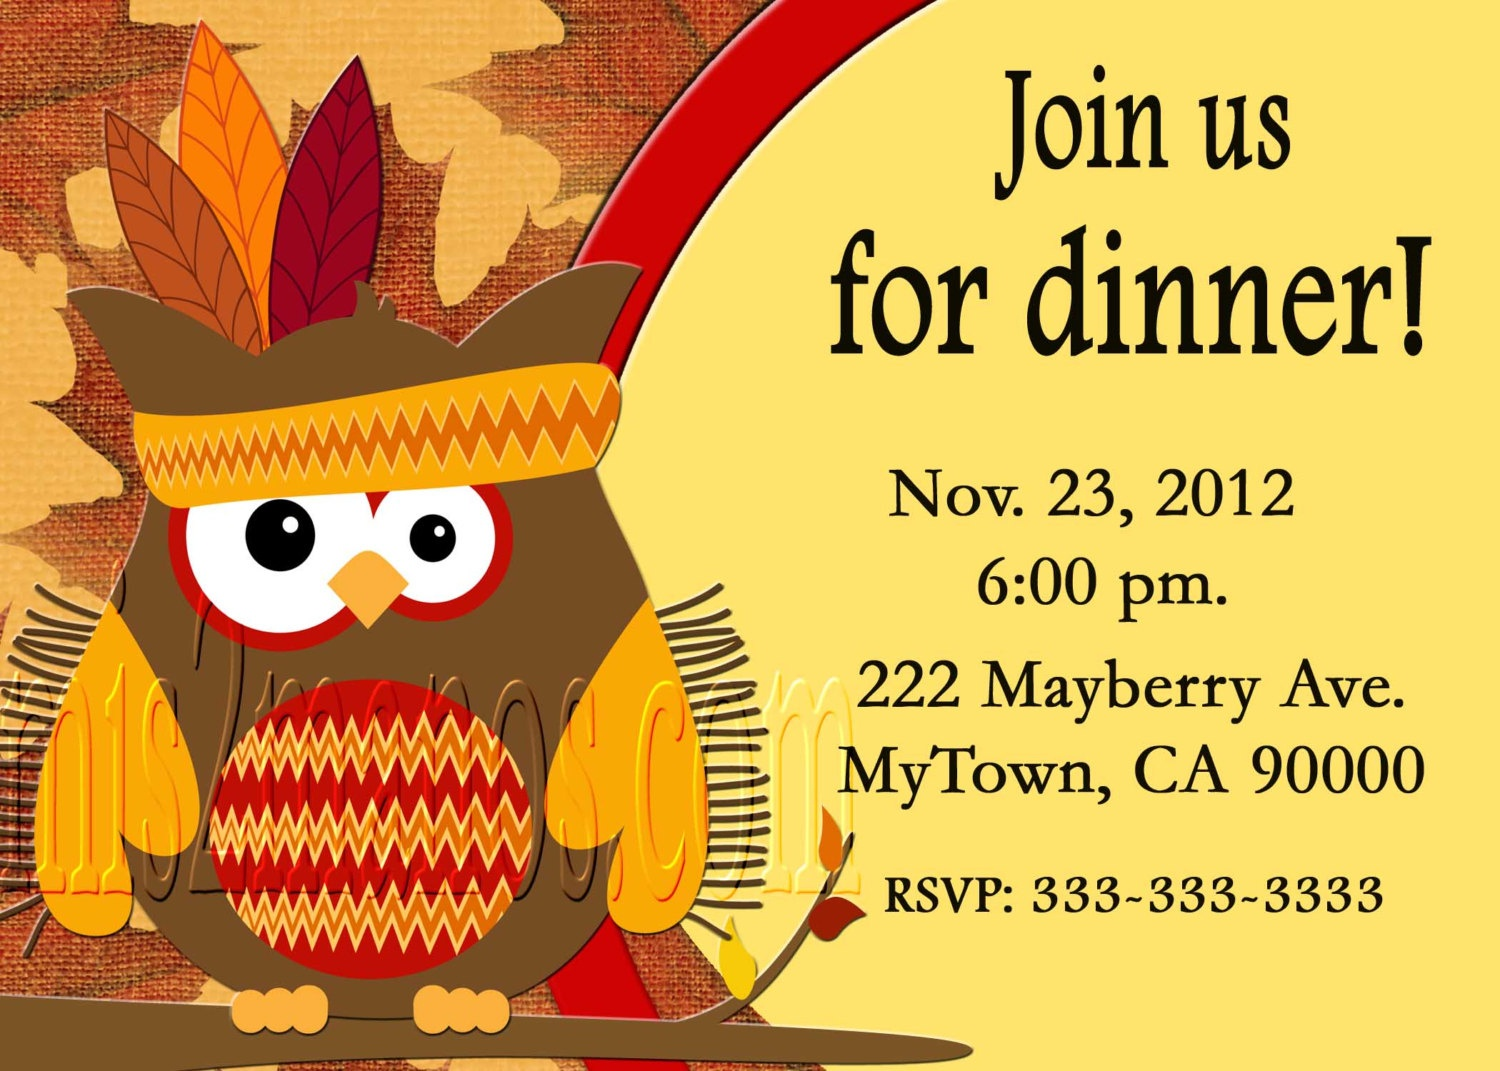 Free Thanksgiving Dinner Invitations - Free Printable Thanksgiving Dinner Invitation Templates